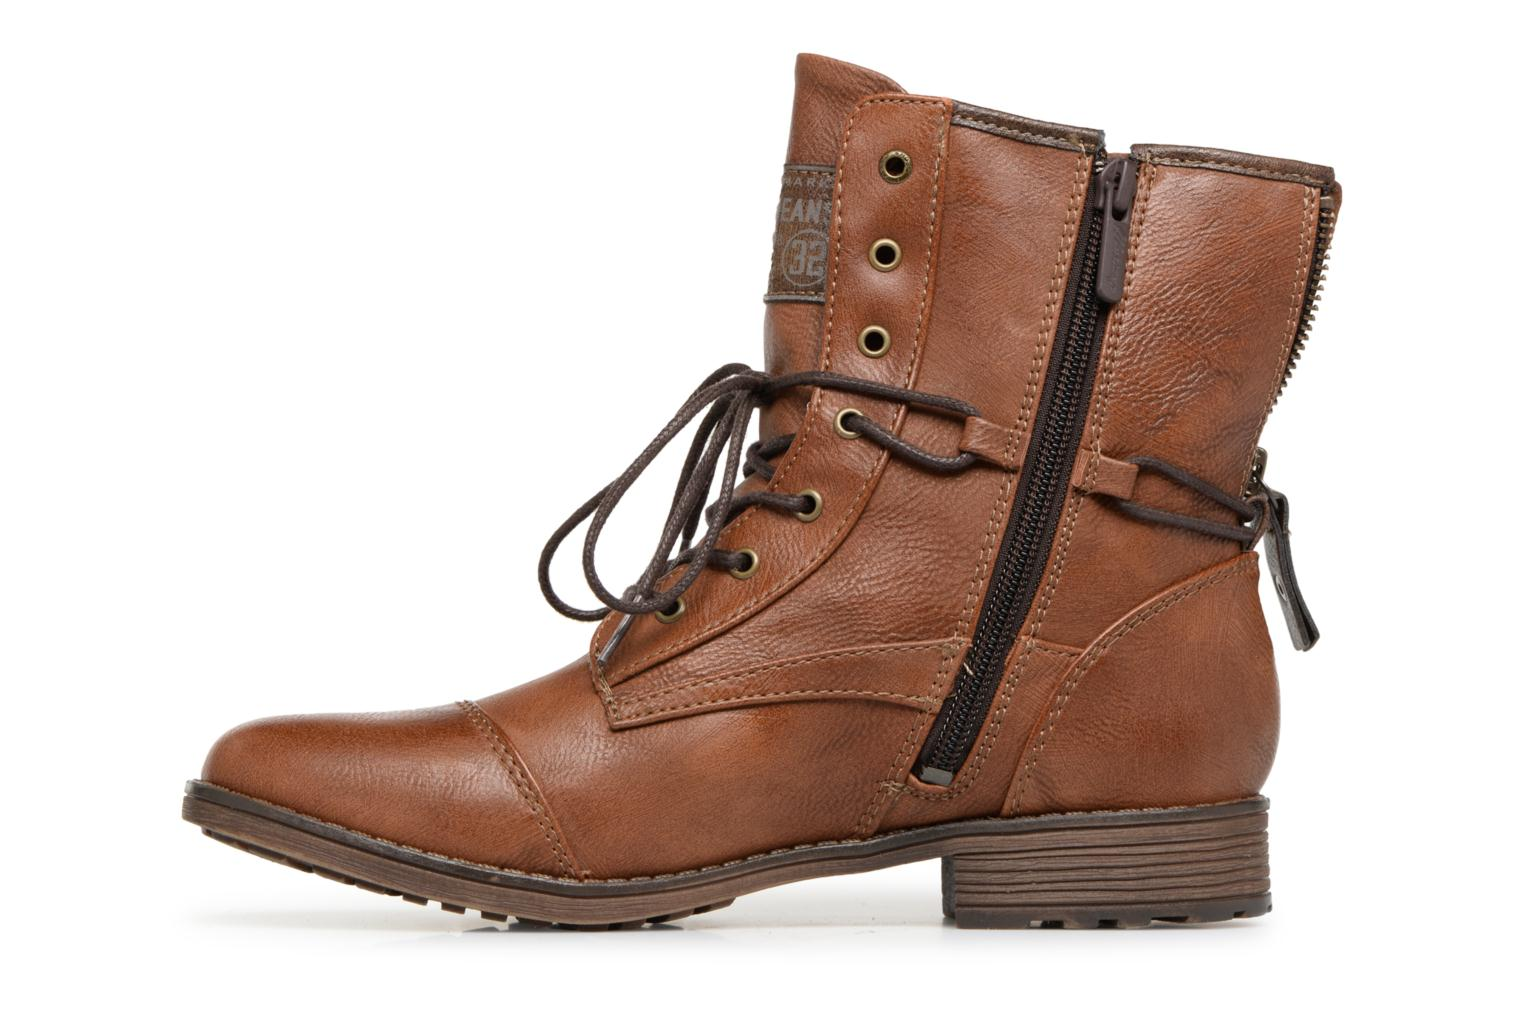 Mustang Shoes Candie Shoes Kastanie Shoes Candie Kastanie Mustang Candie Mustang Aw5YvqA